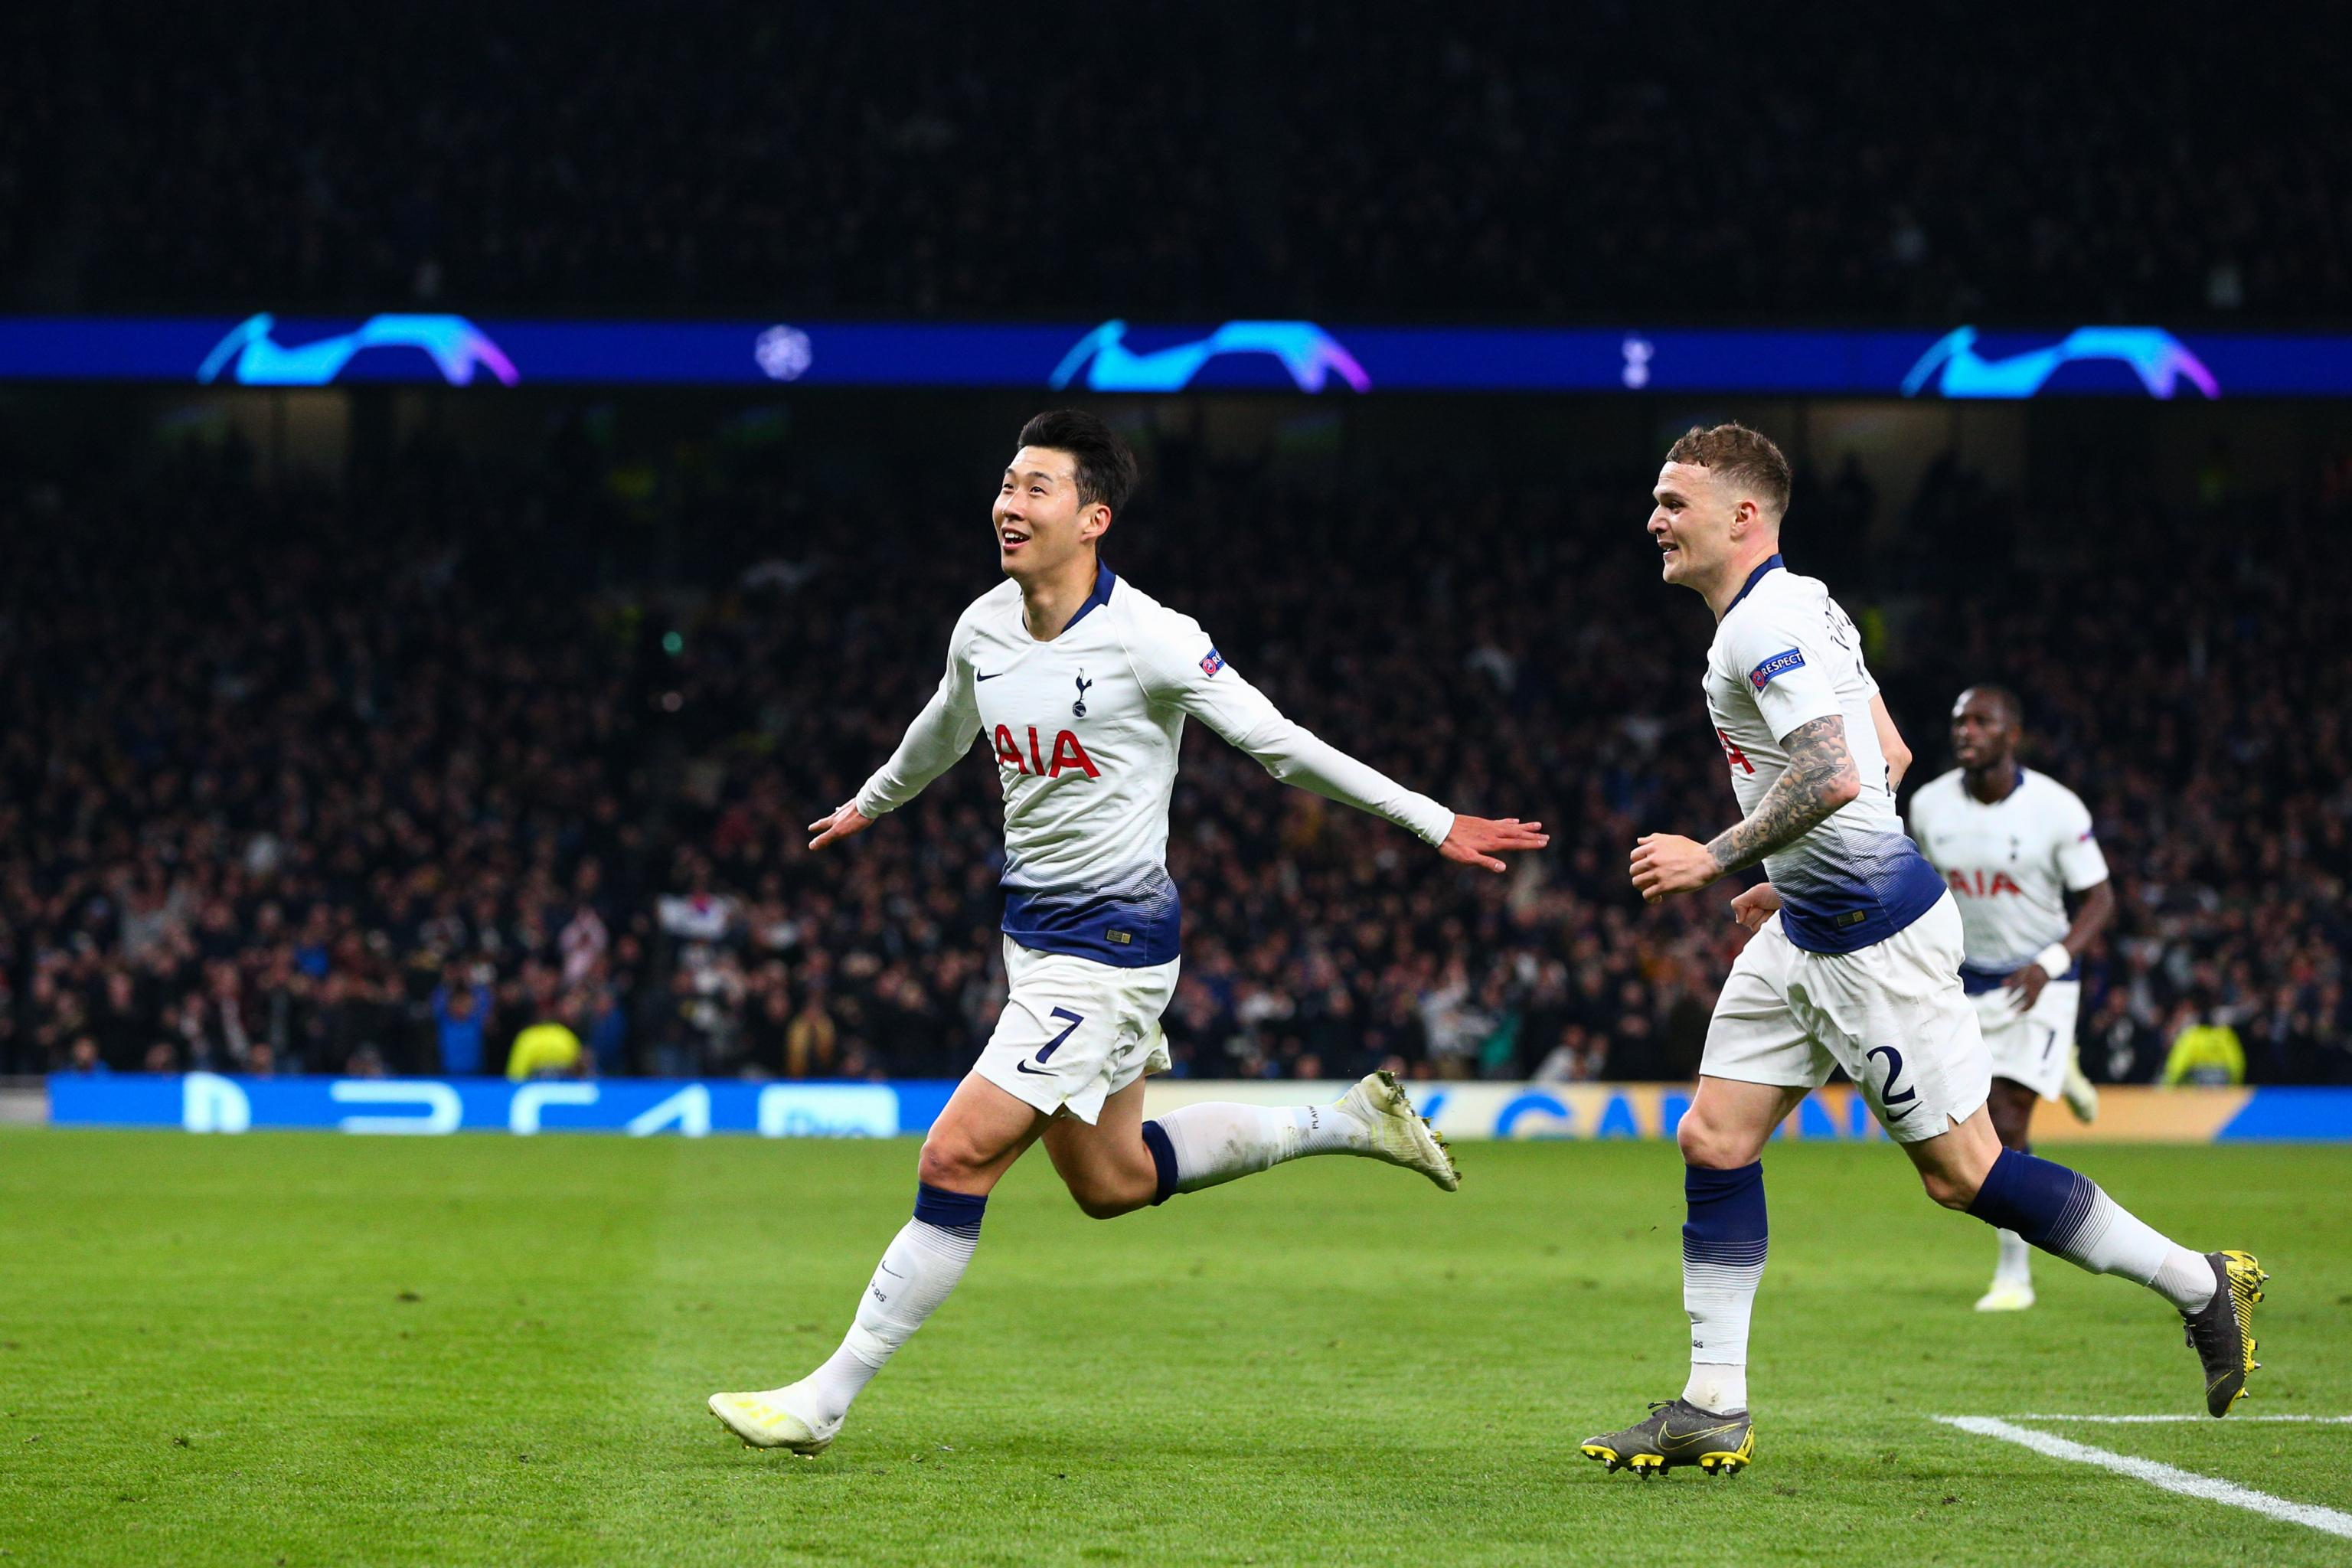 champions league results 2019 top scorers after tuesday s quarter final ties bleacher report latest news videos and highlights champions league results 2019 top